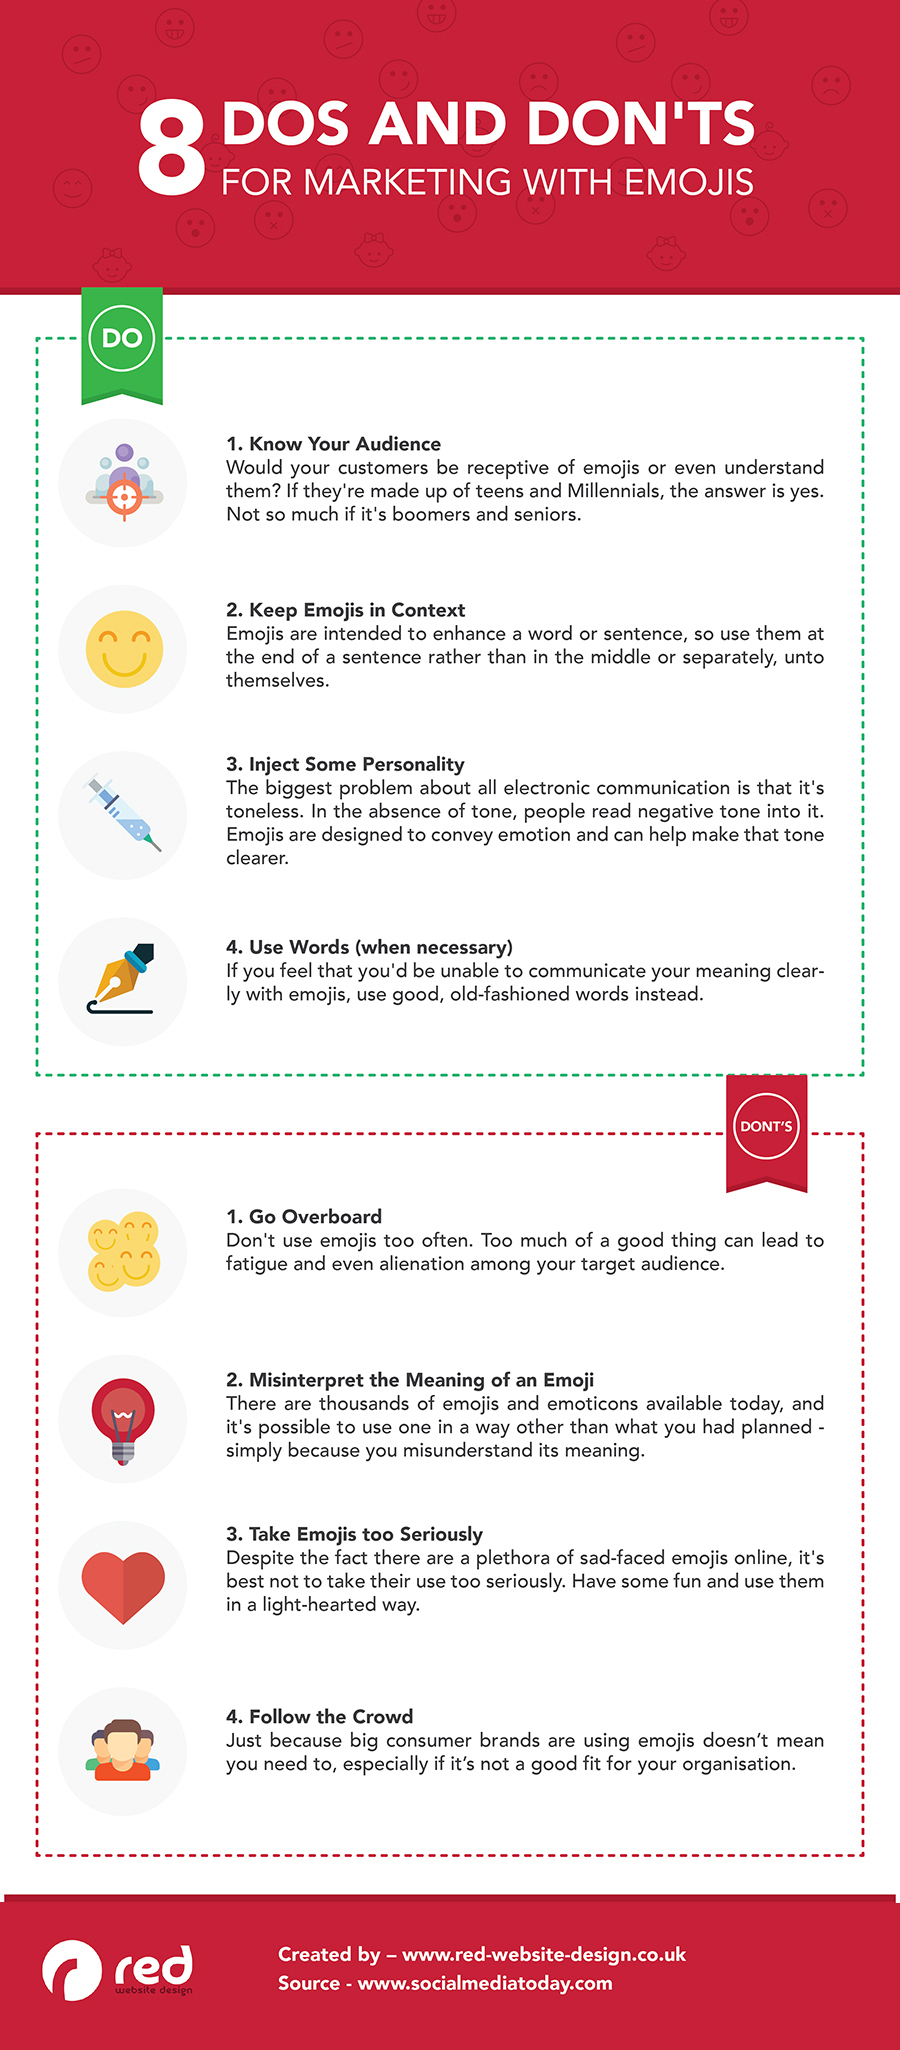 Infographic looks at how to avoid potential issues with emoji use in marketing